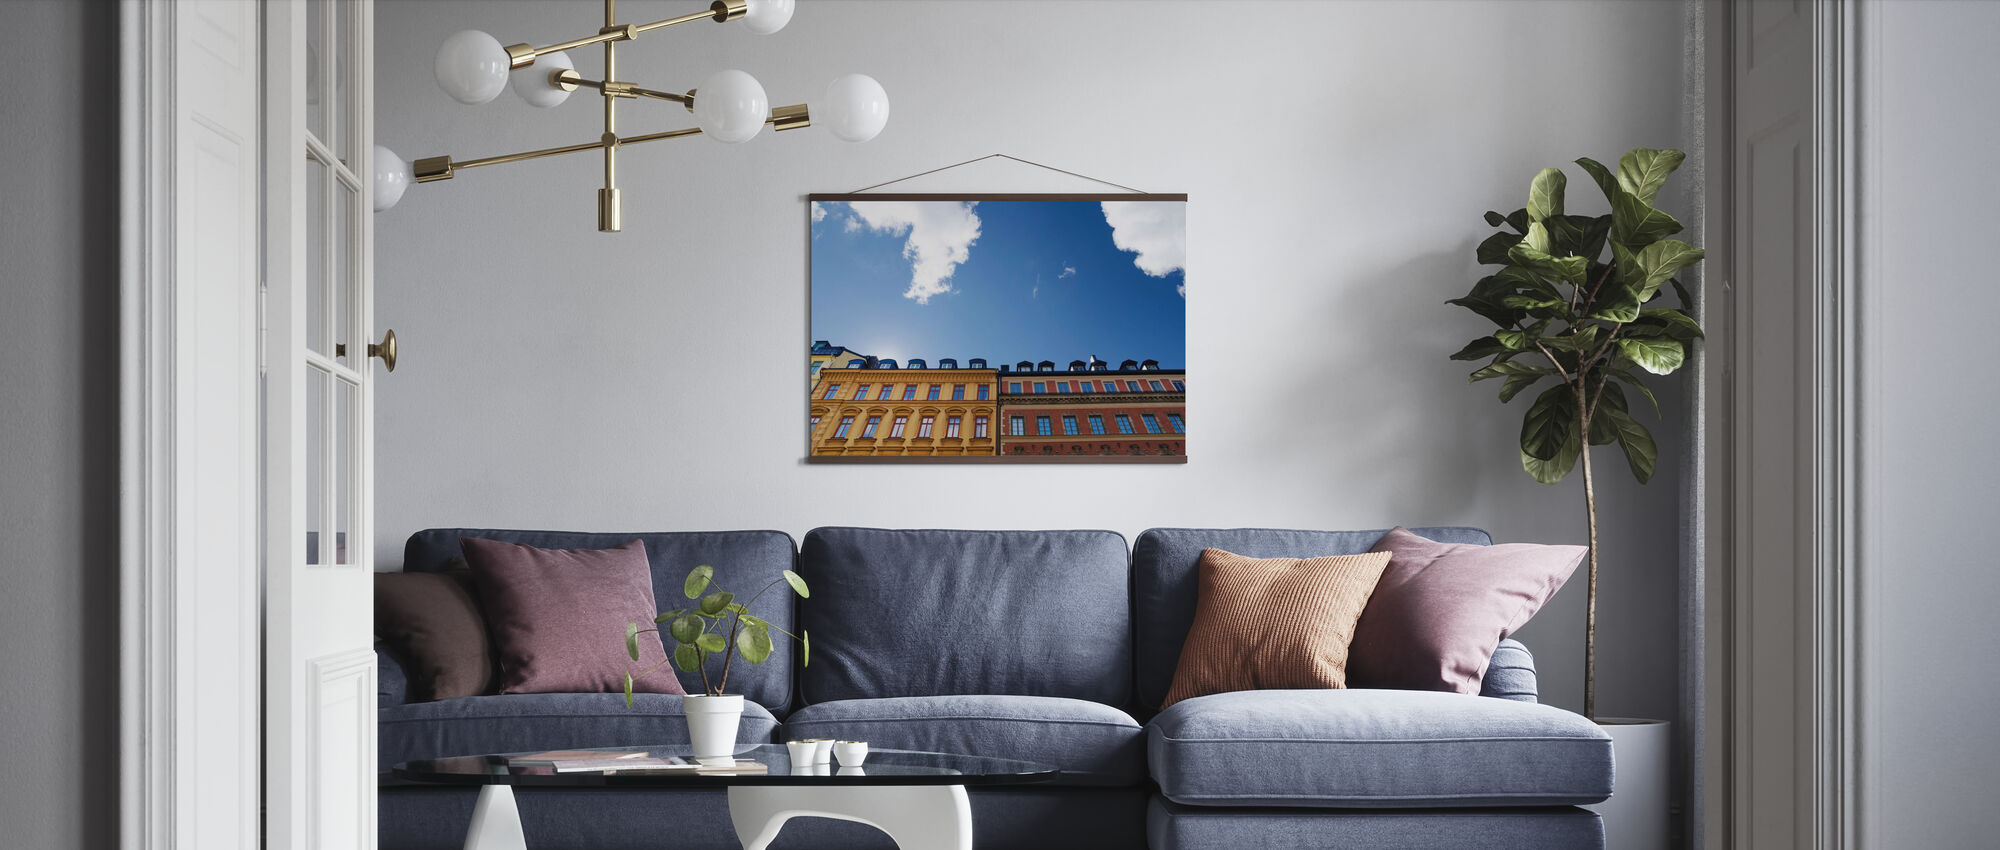 Vivid Colors of Buildings in Stockholm - Poster - Living Room